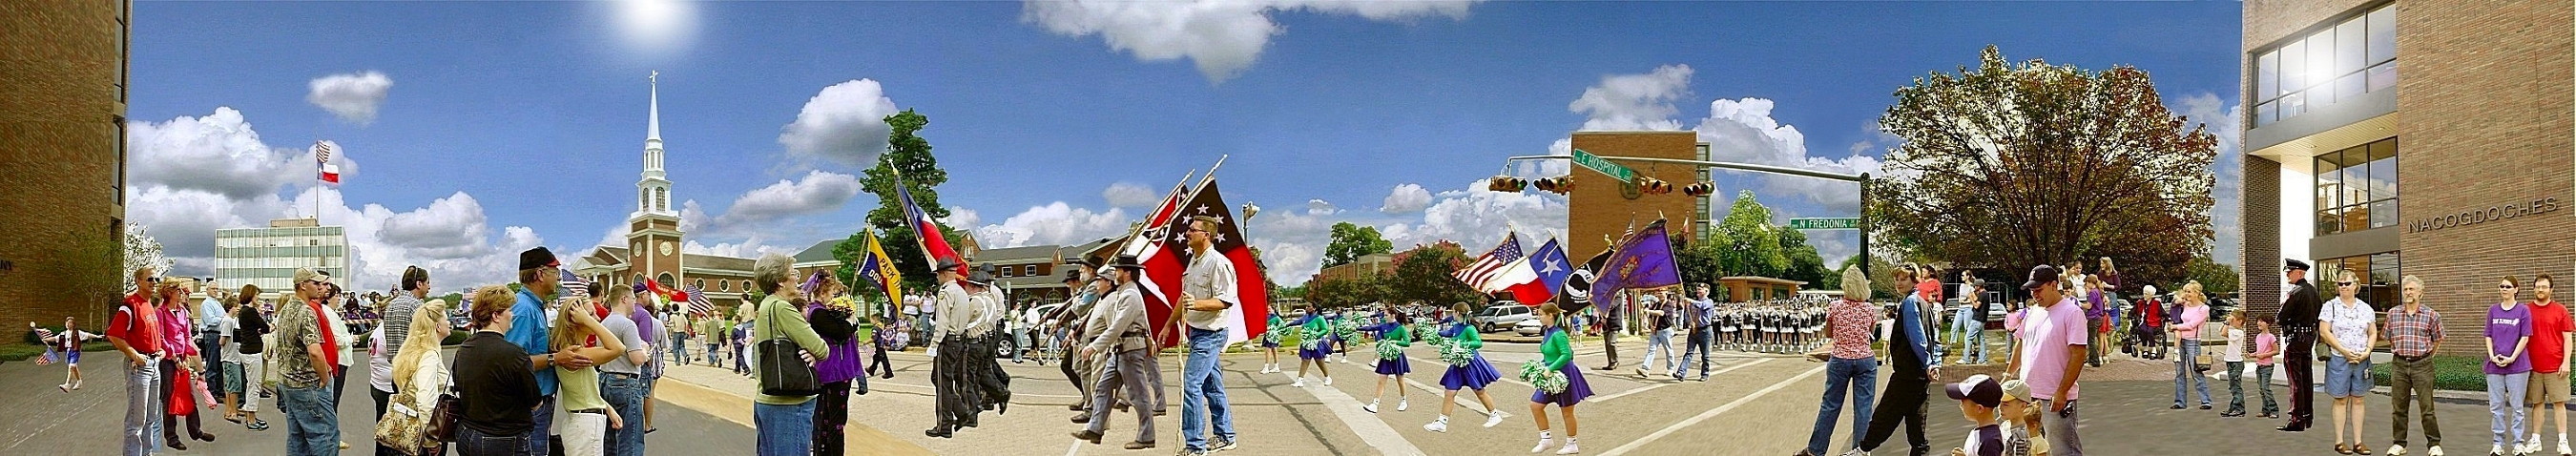 Picture of Veterans Day Parade in Historic Nacogdoches